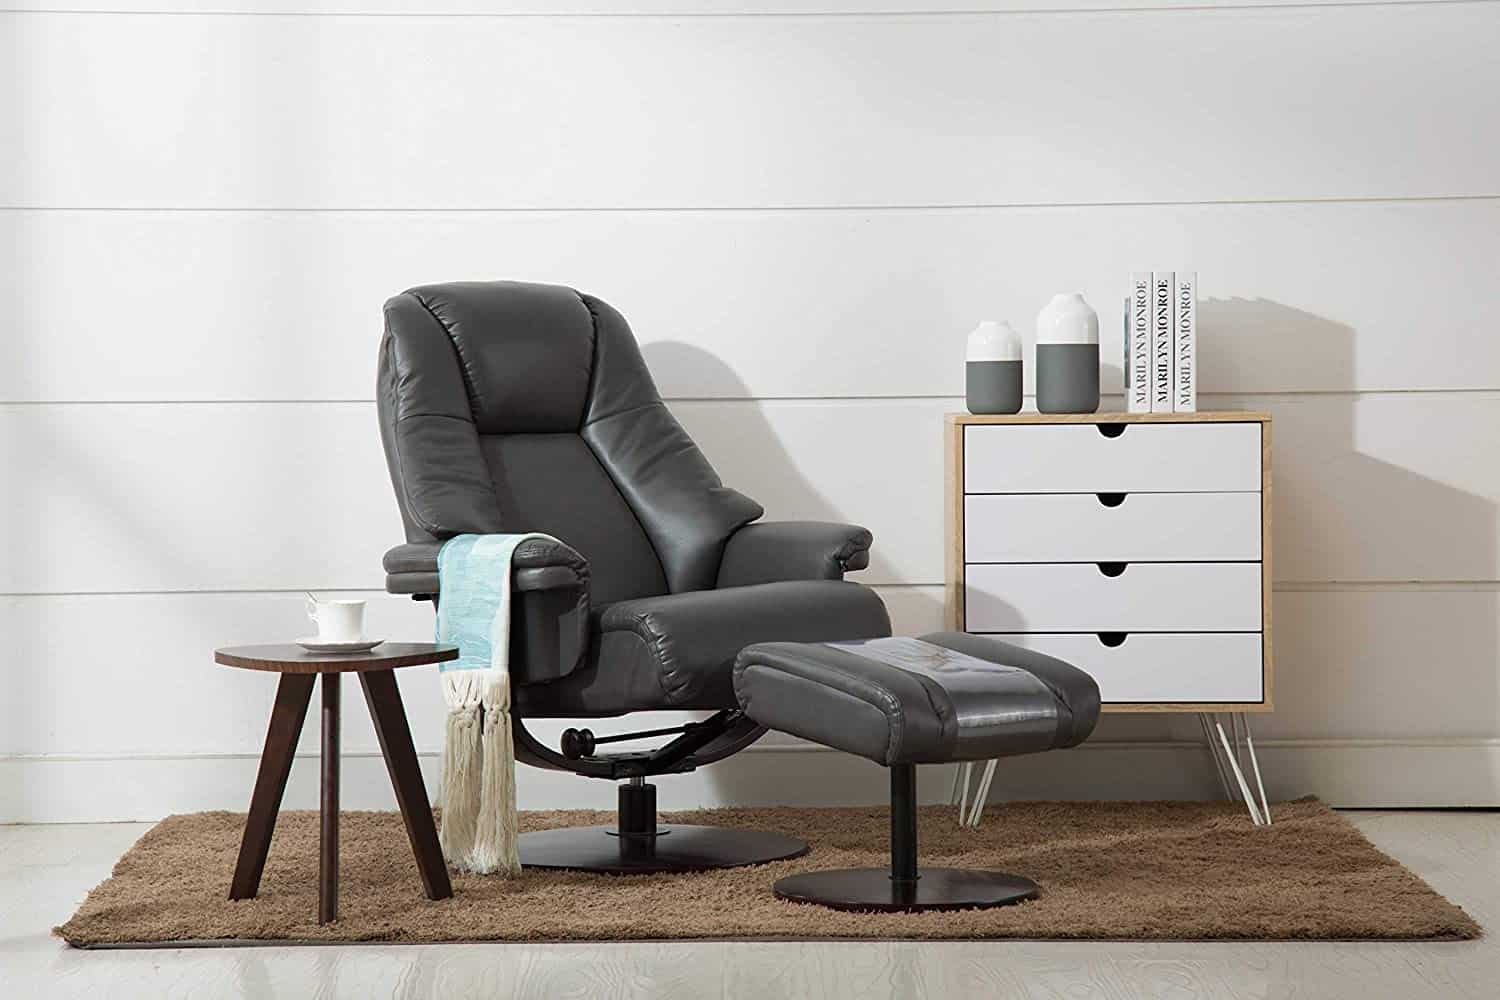 24. Comfort Chair Company Manual Recliner